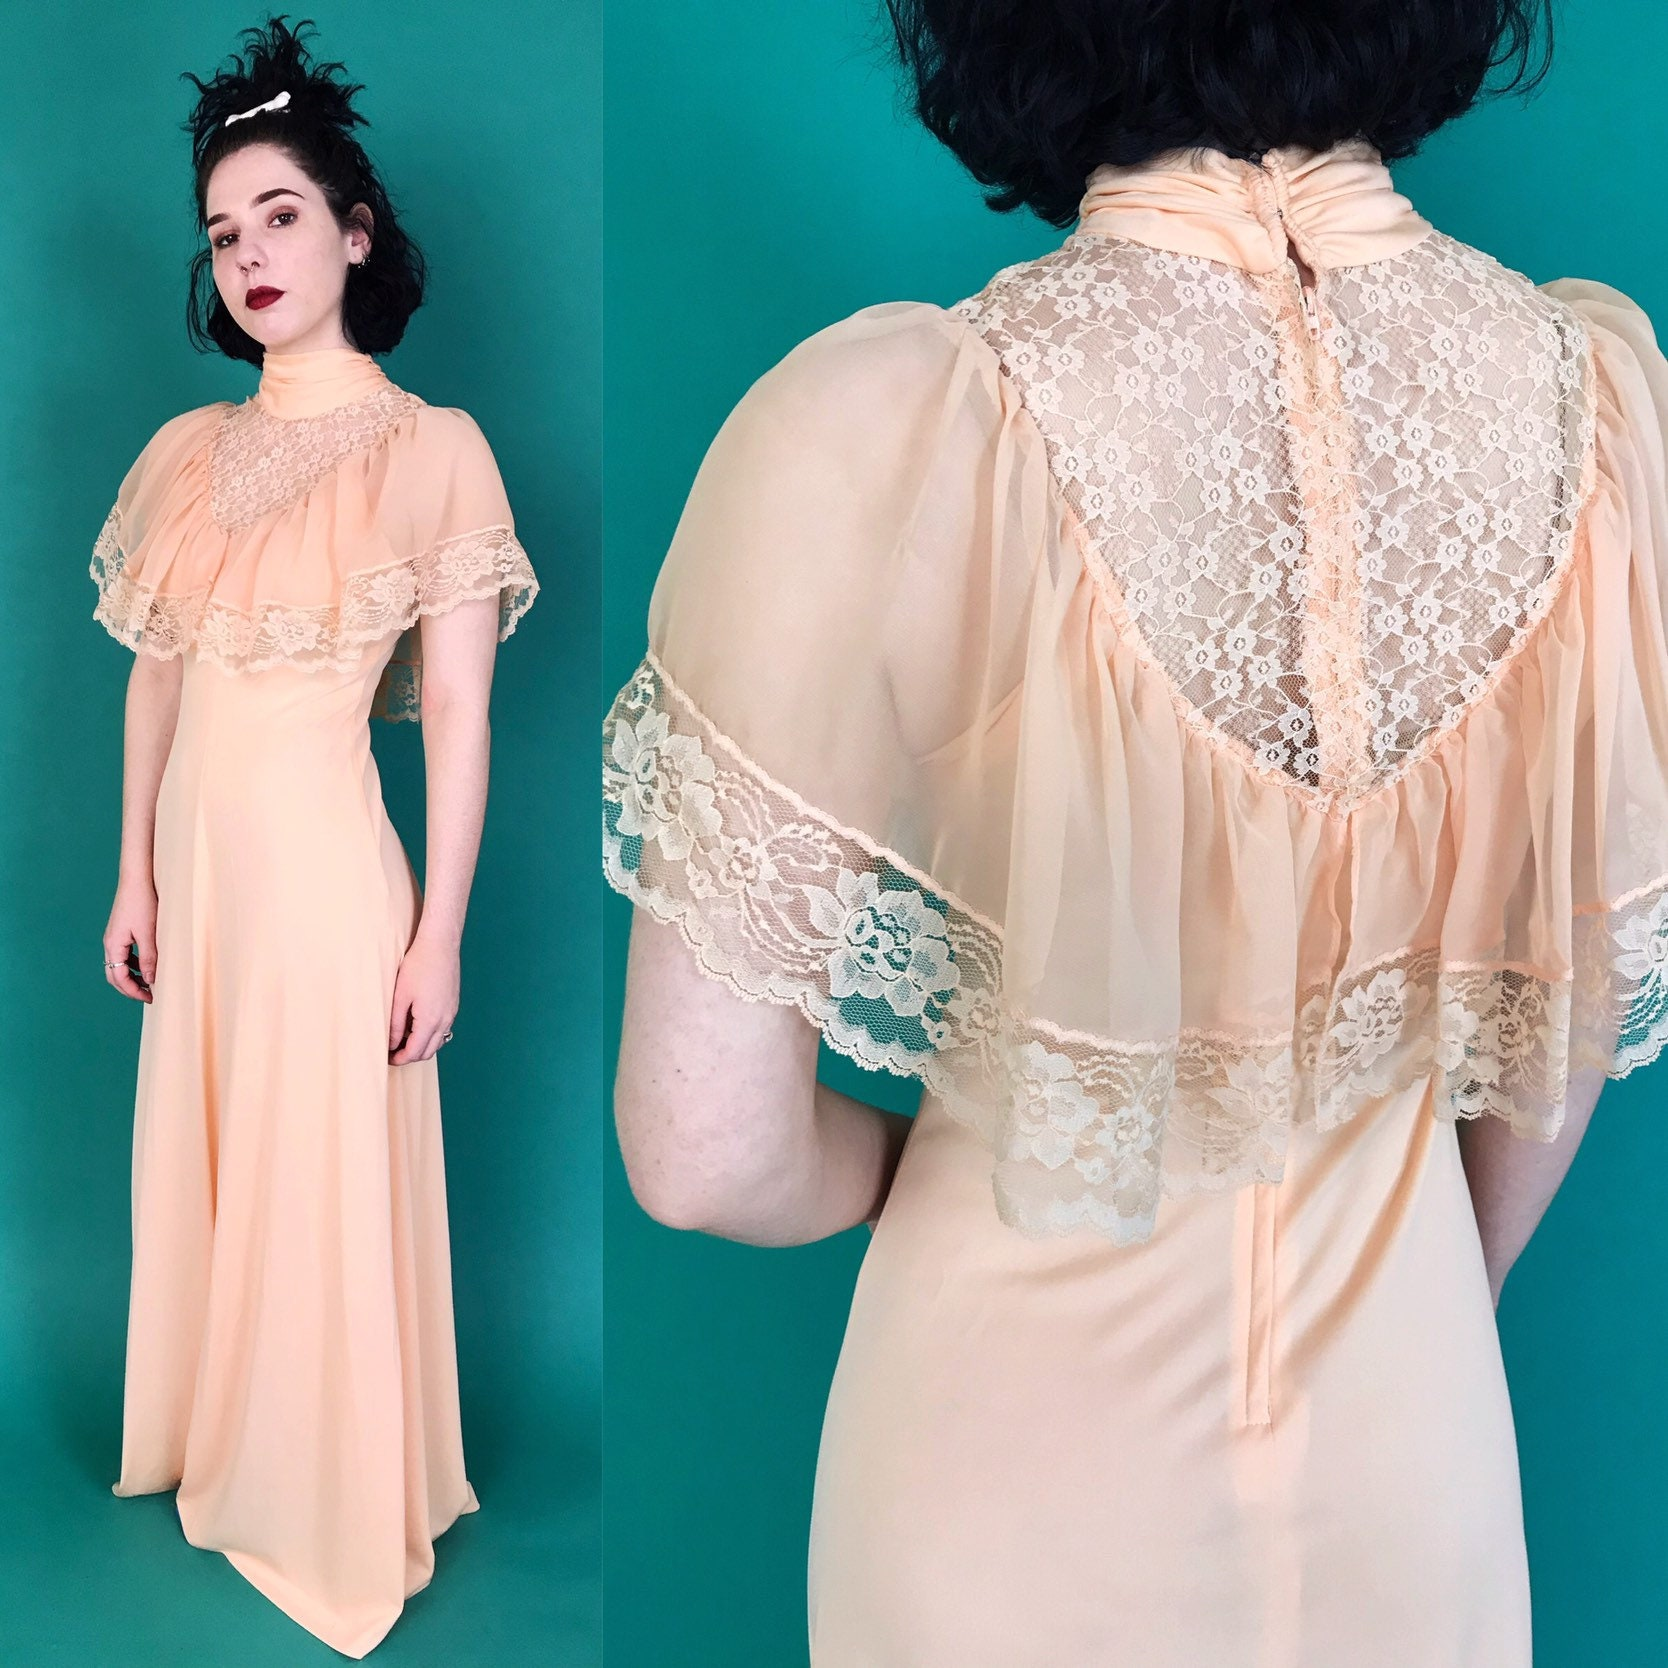 f9a72866cd4 ... Formal Dress - Rare Romantic Girly Victorian Lacy Cape Sleeve  Minidress. gallery photo ...